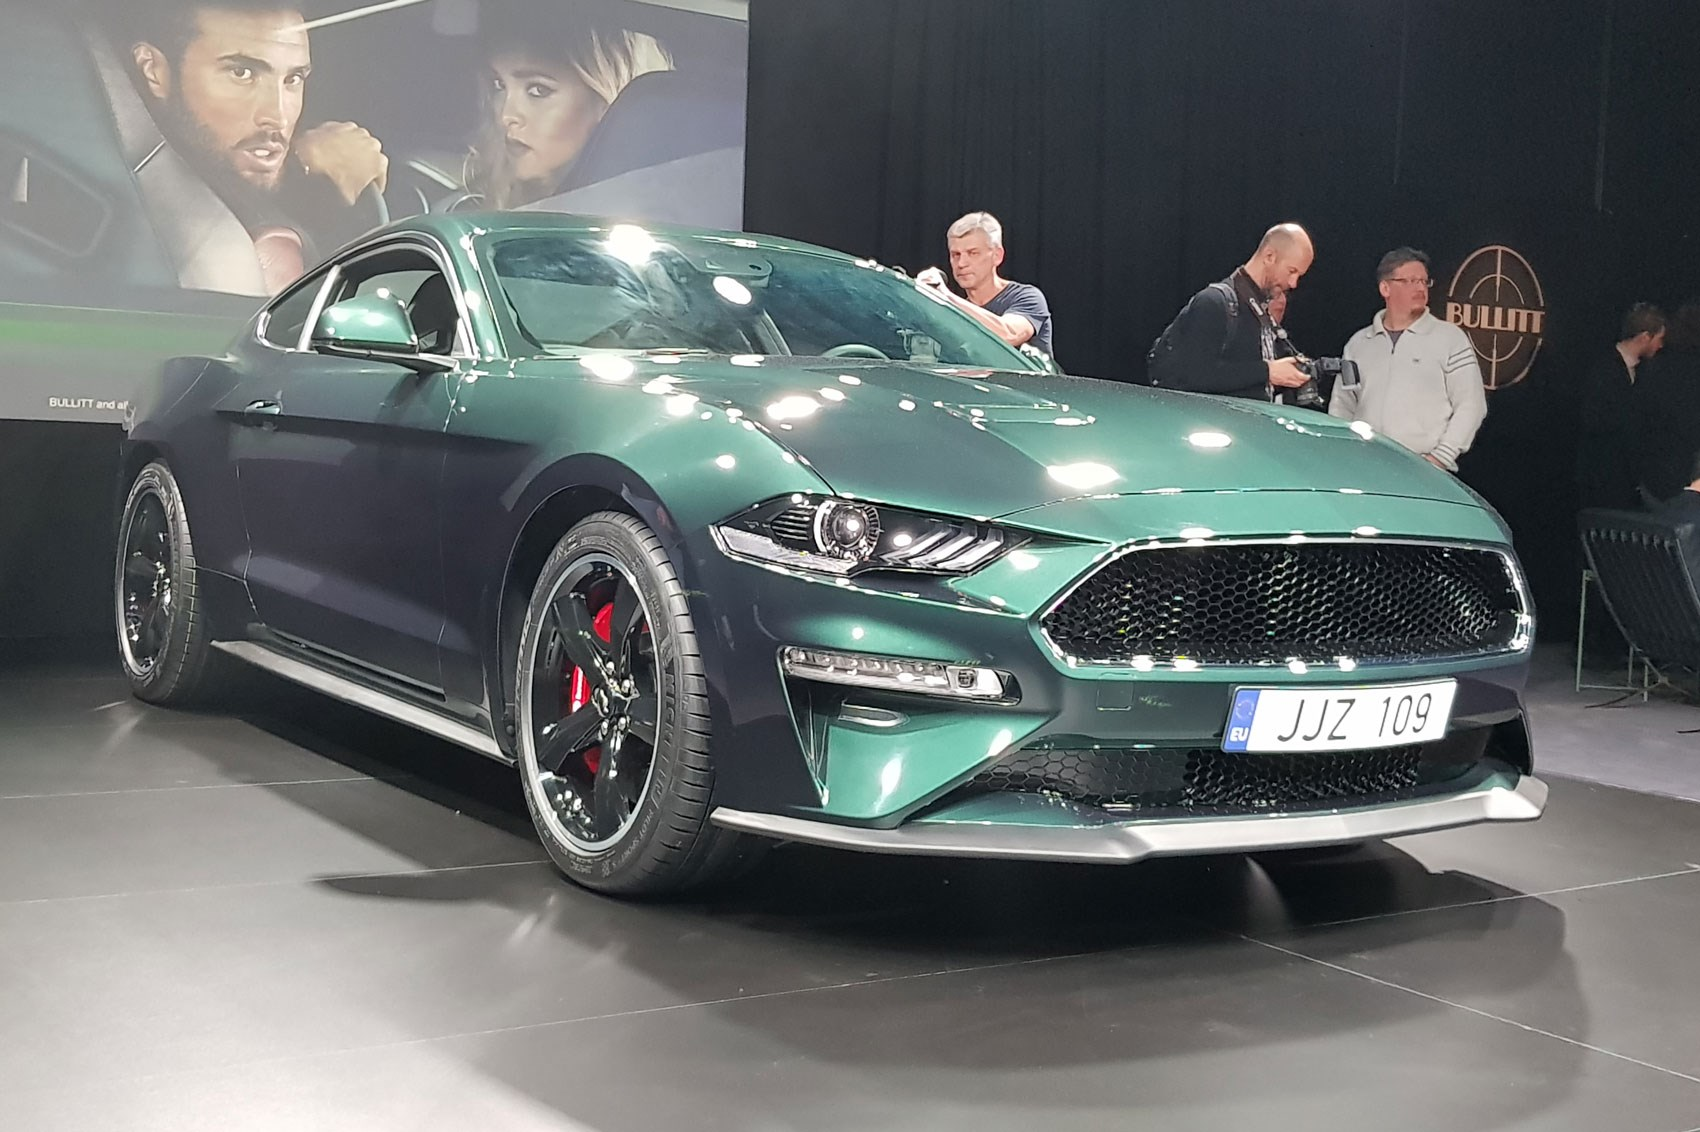 Ford mustang bullitt sold for 300000 at barrett jackson charity auction in january 2018